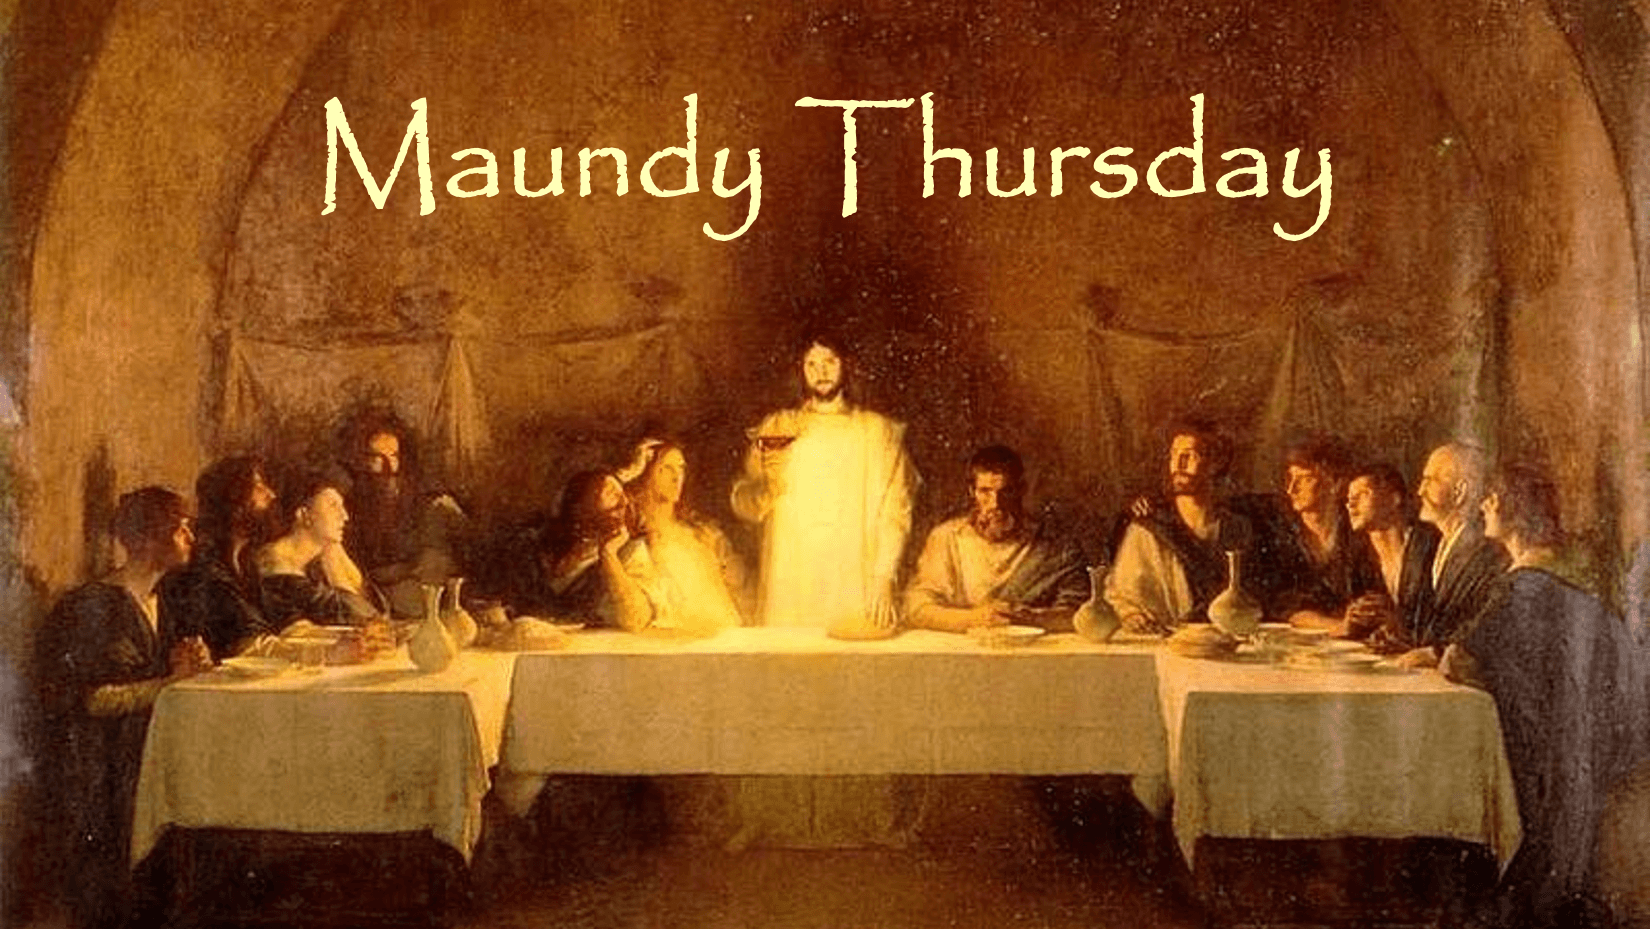 Maundy Thursday 2019: What Does It Mean? Everything You Need To Know